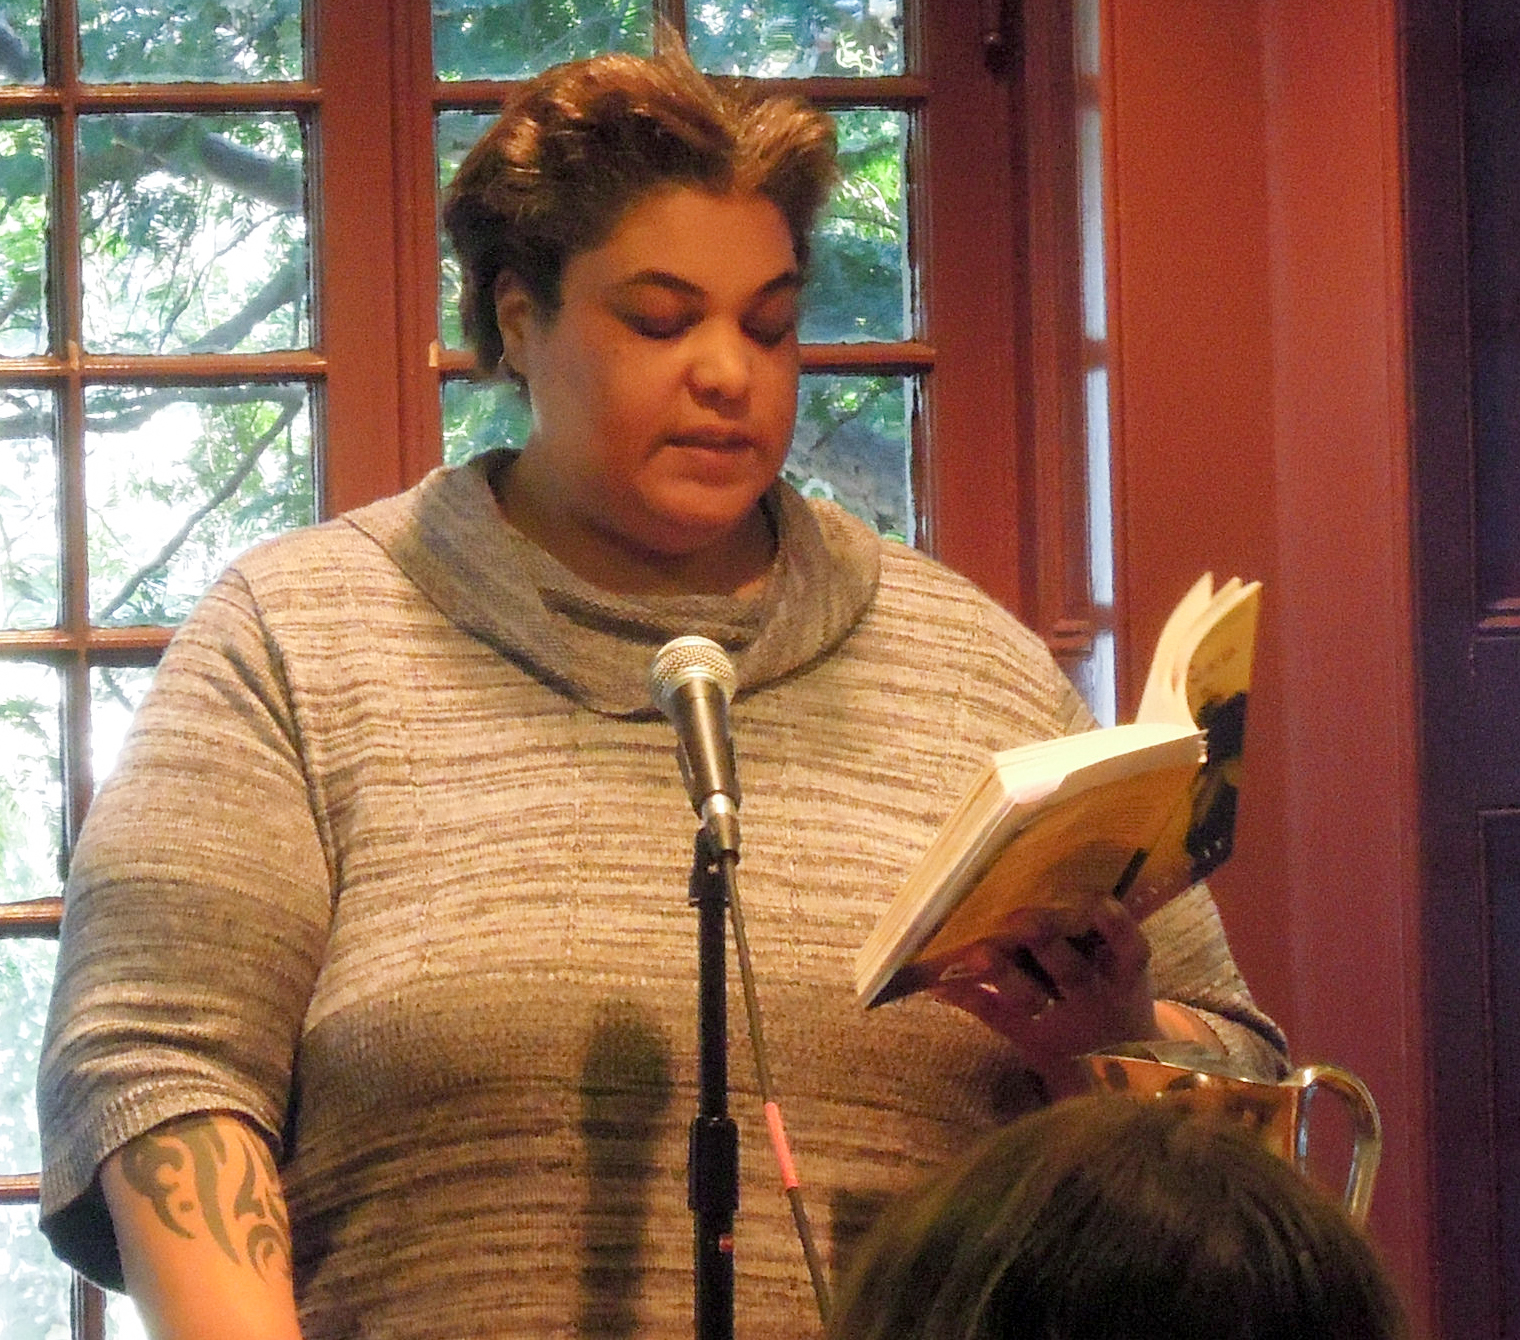 the themes of feminism in bad feminist a collection of essays by roxane gay Roxane gay's new short story collection difficult women is out in  gay after  the publication of a book of essays, bad feminist, and  feminism means and  who is doing it right, her collection of essays came just at the right moment   there are common themes throughout the collection, but you never.